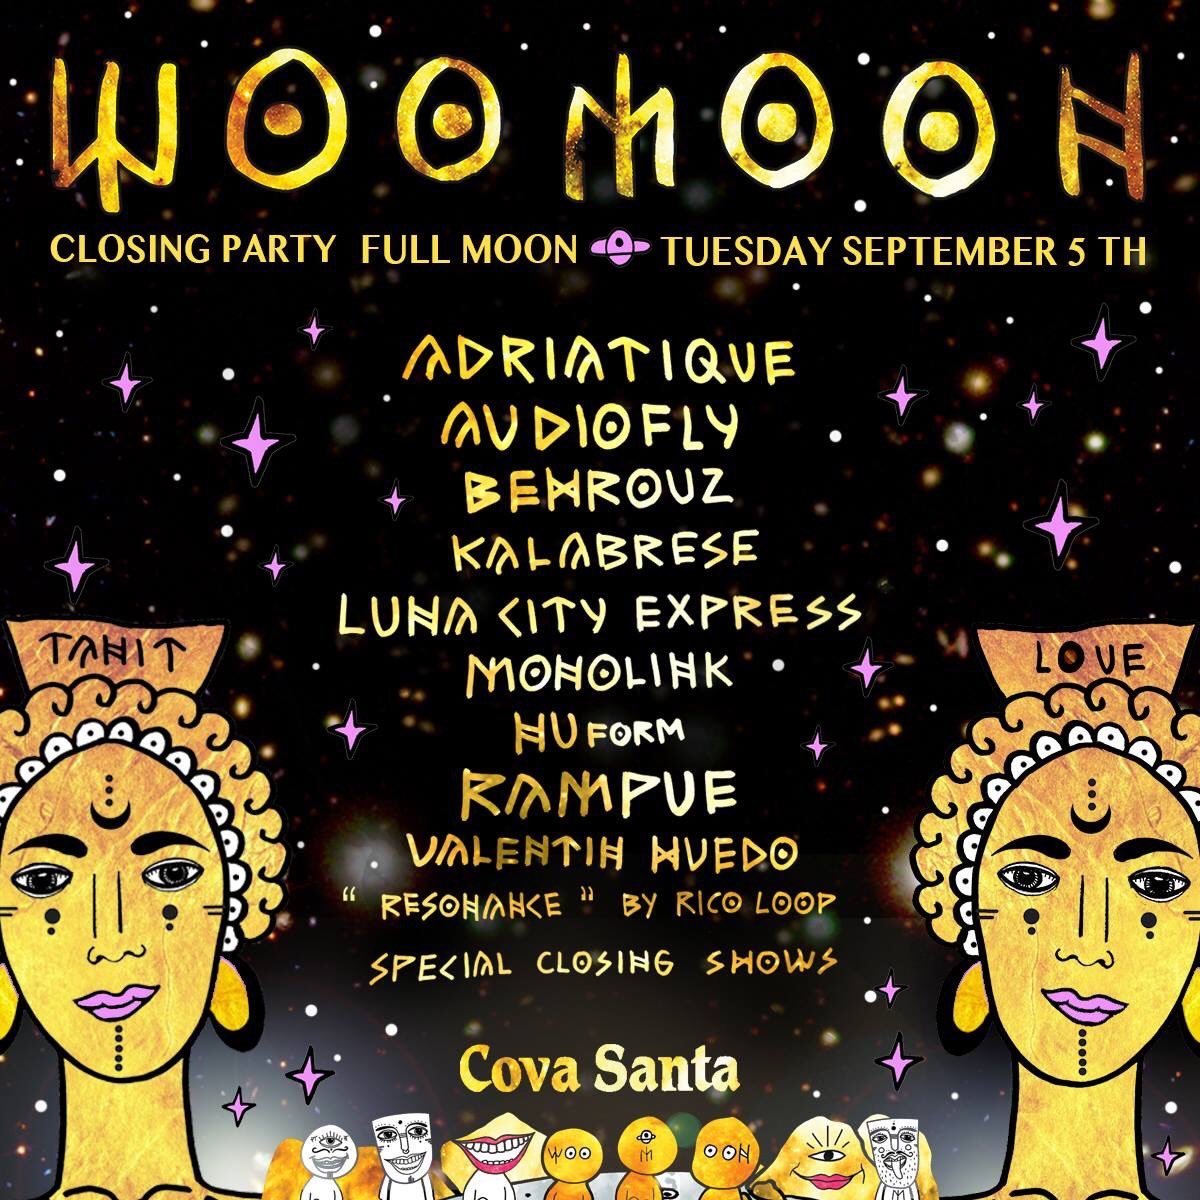 download → Rampue - live at Womoon Closing Party 2017 (Cova Santa, Ibiza) - 05-Sep-2017